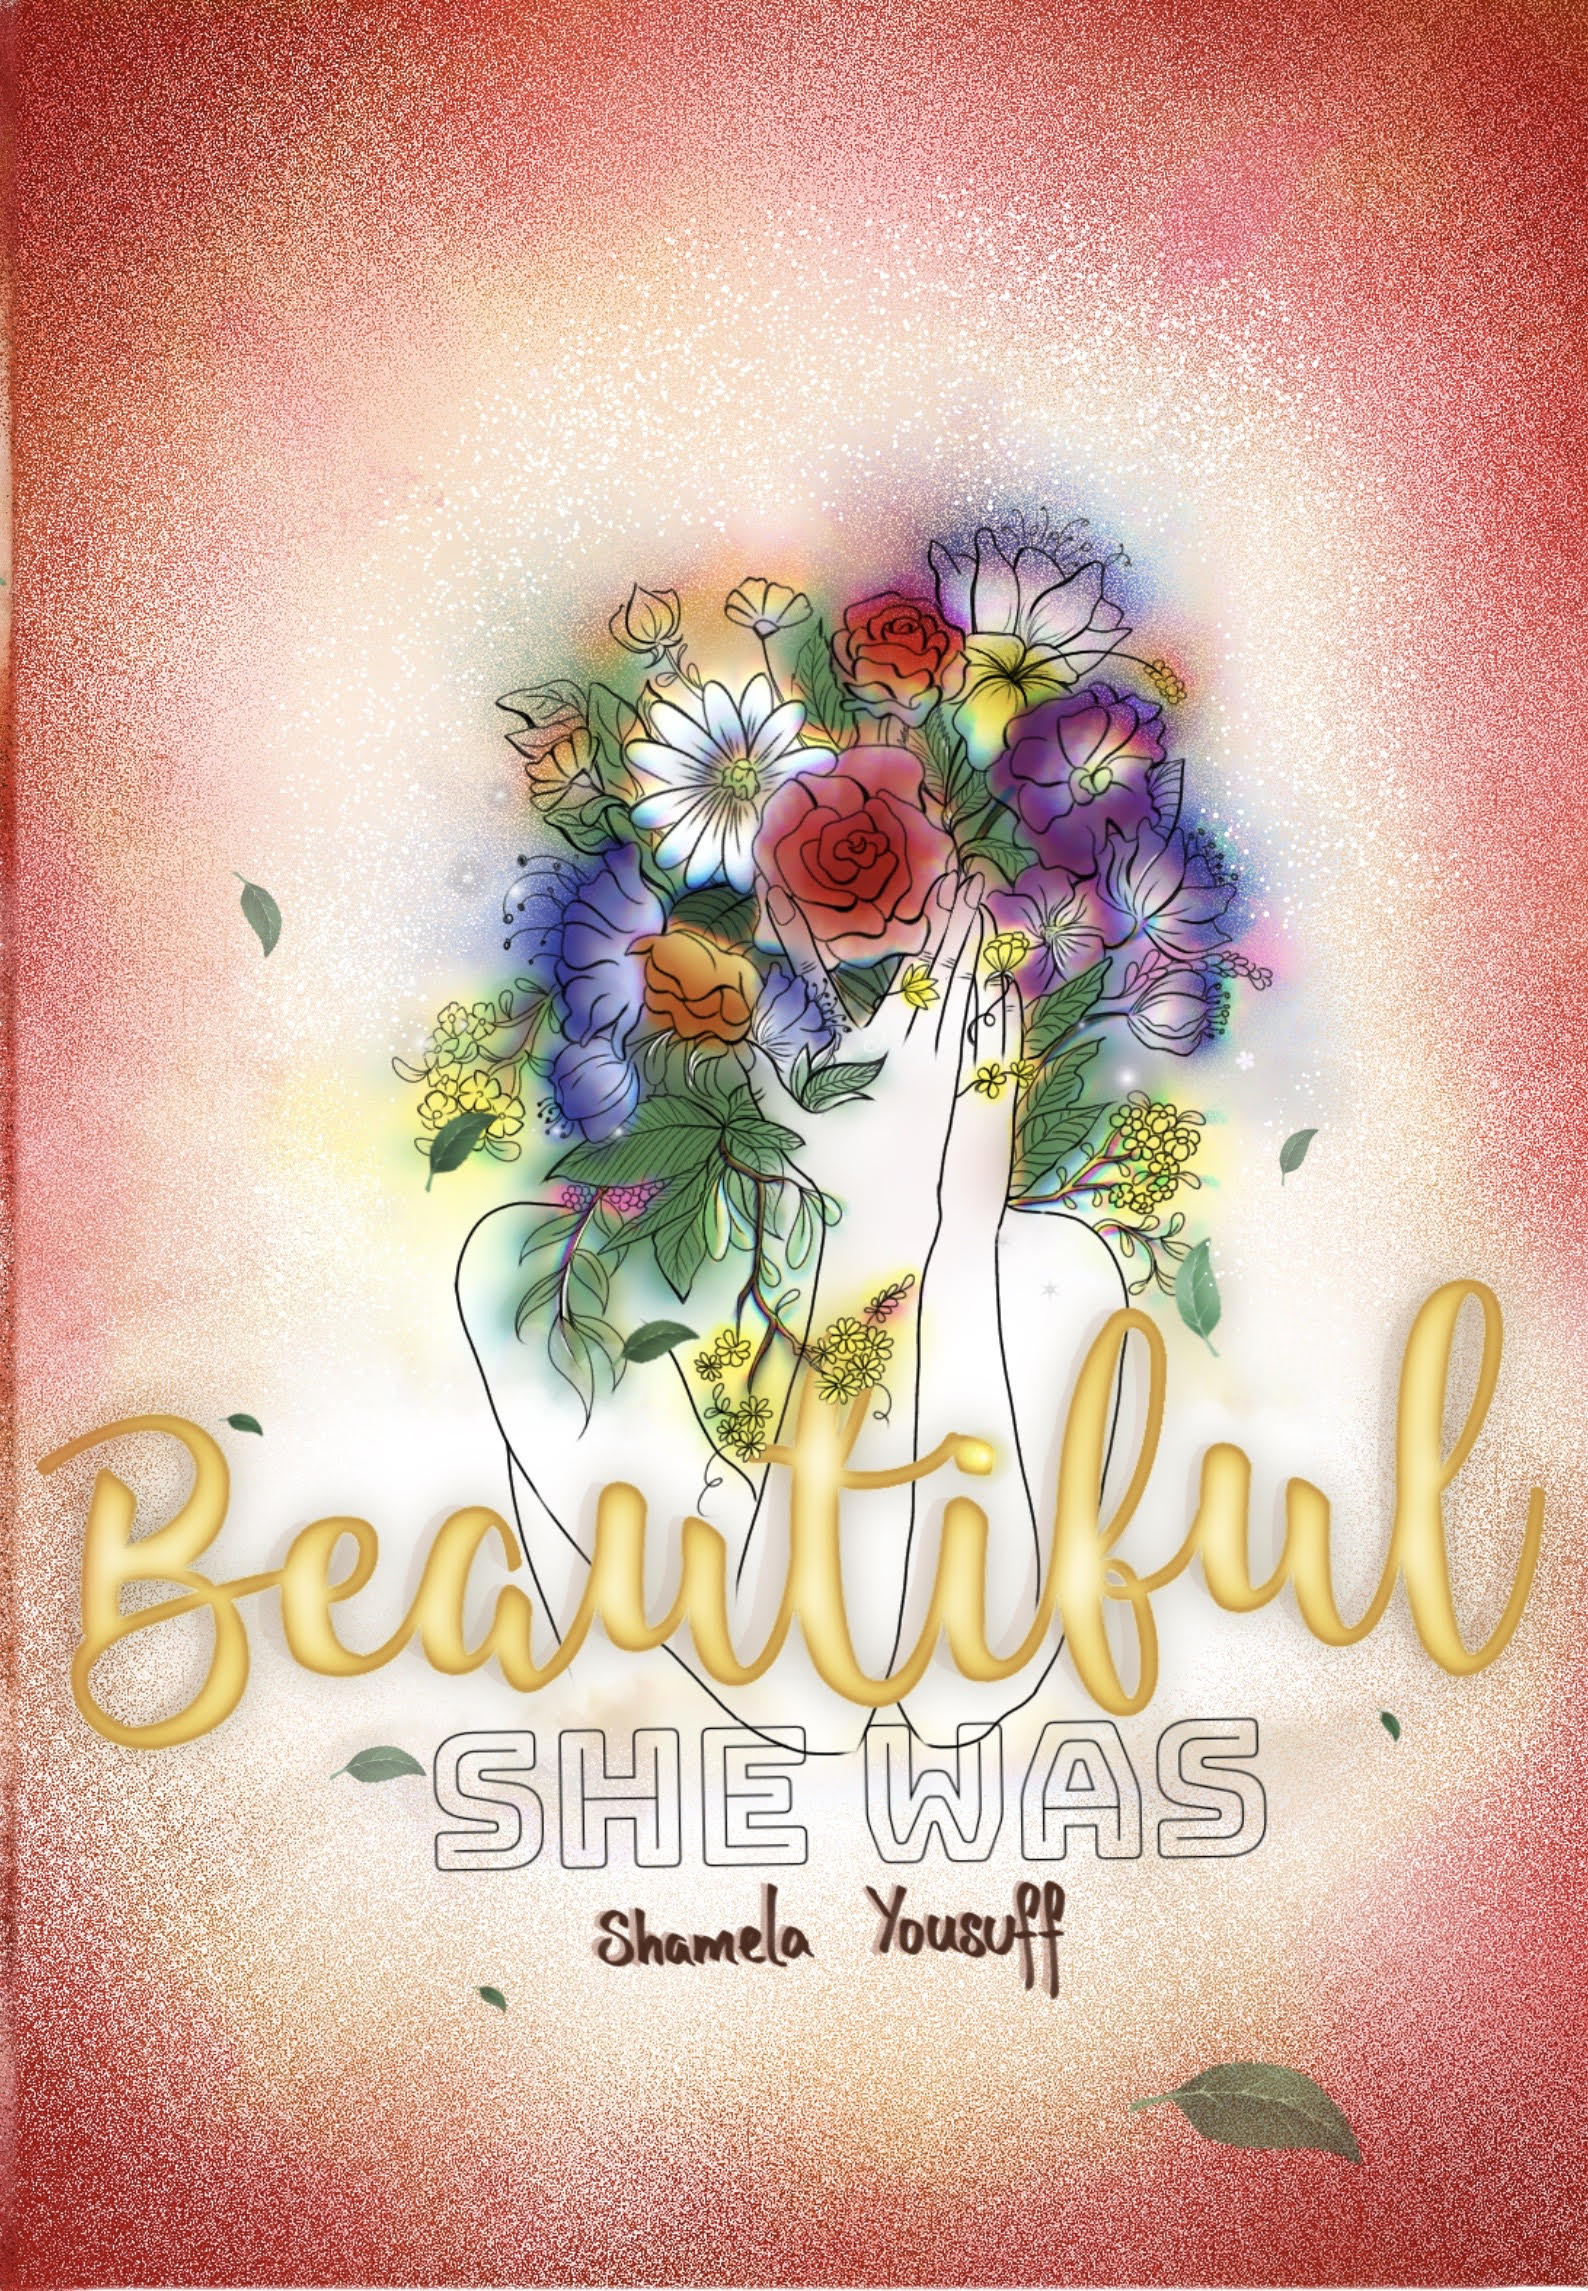 Author Interview with Shamela Yousuff